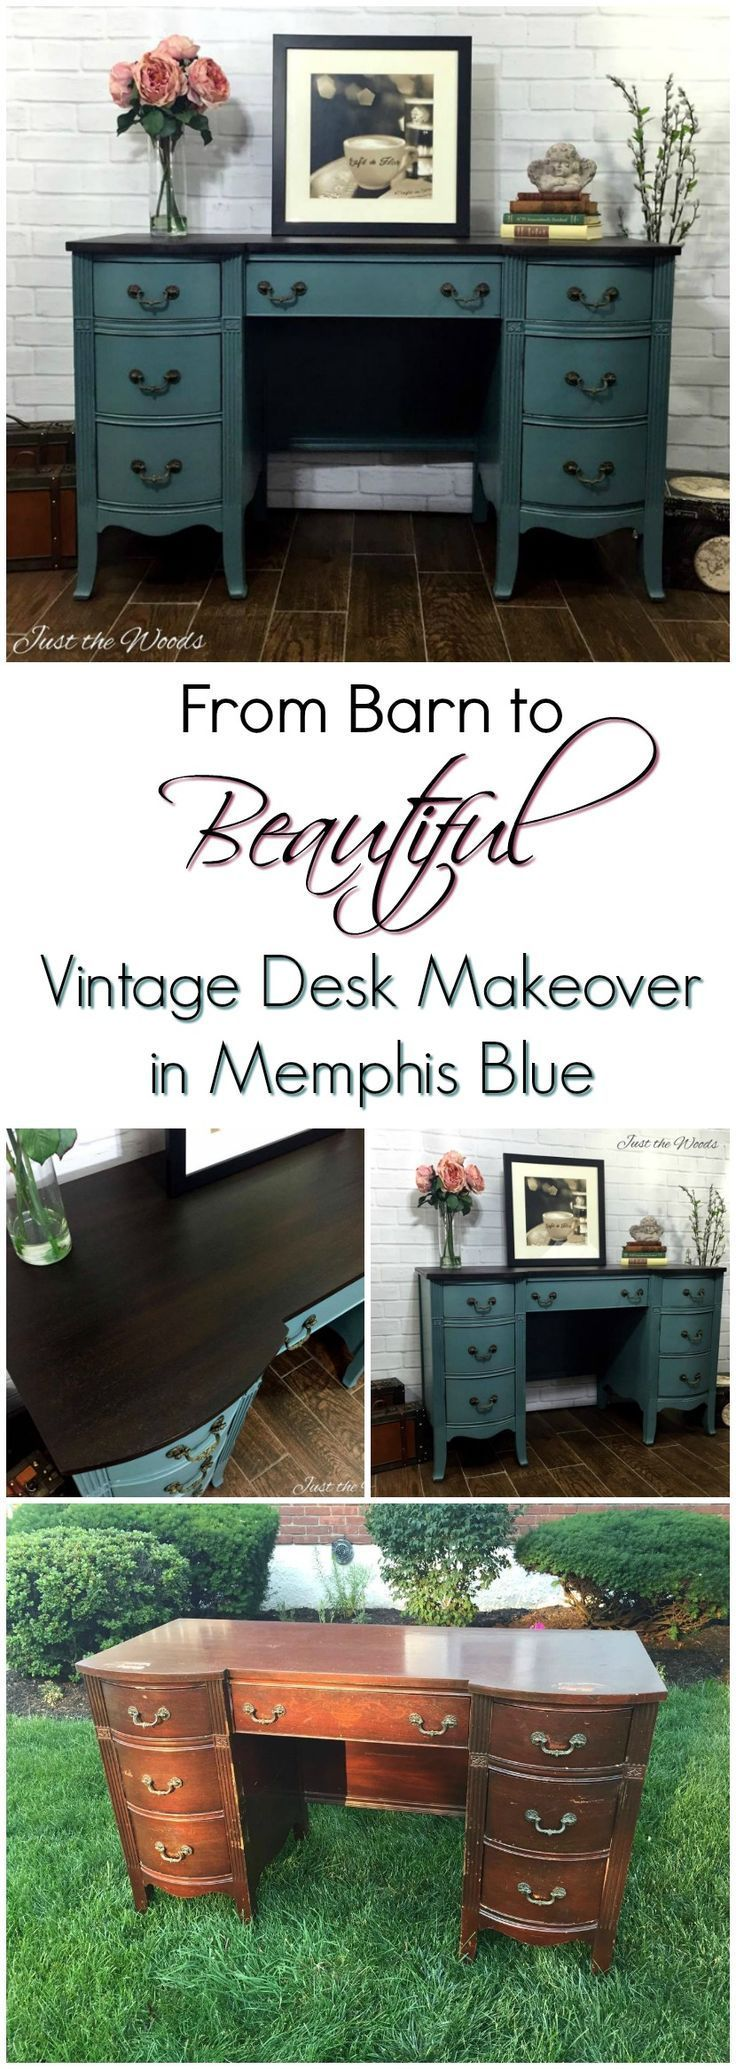 Vintage Desk rescued from old barn has been hand painted memphis blue with stain (scheduled via http://www.tailwindapp.com?utm_source=pinterest&utm_medium=twpin&utm_content=post103159185&utm_campaign=scheduler_attribution)